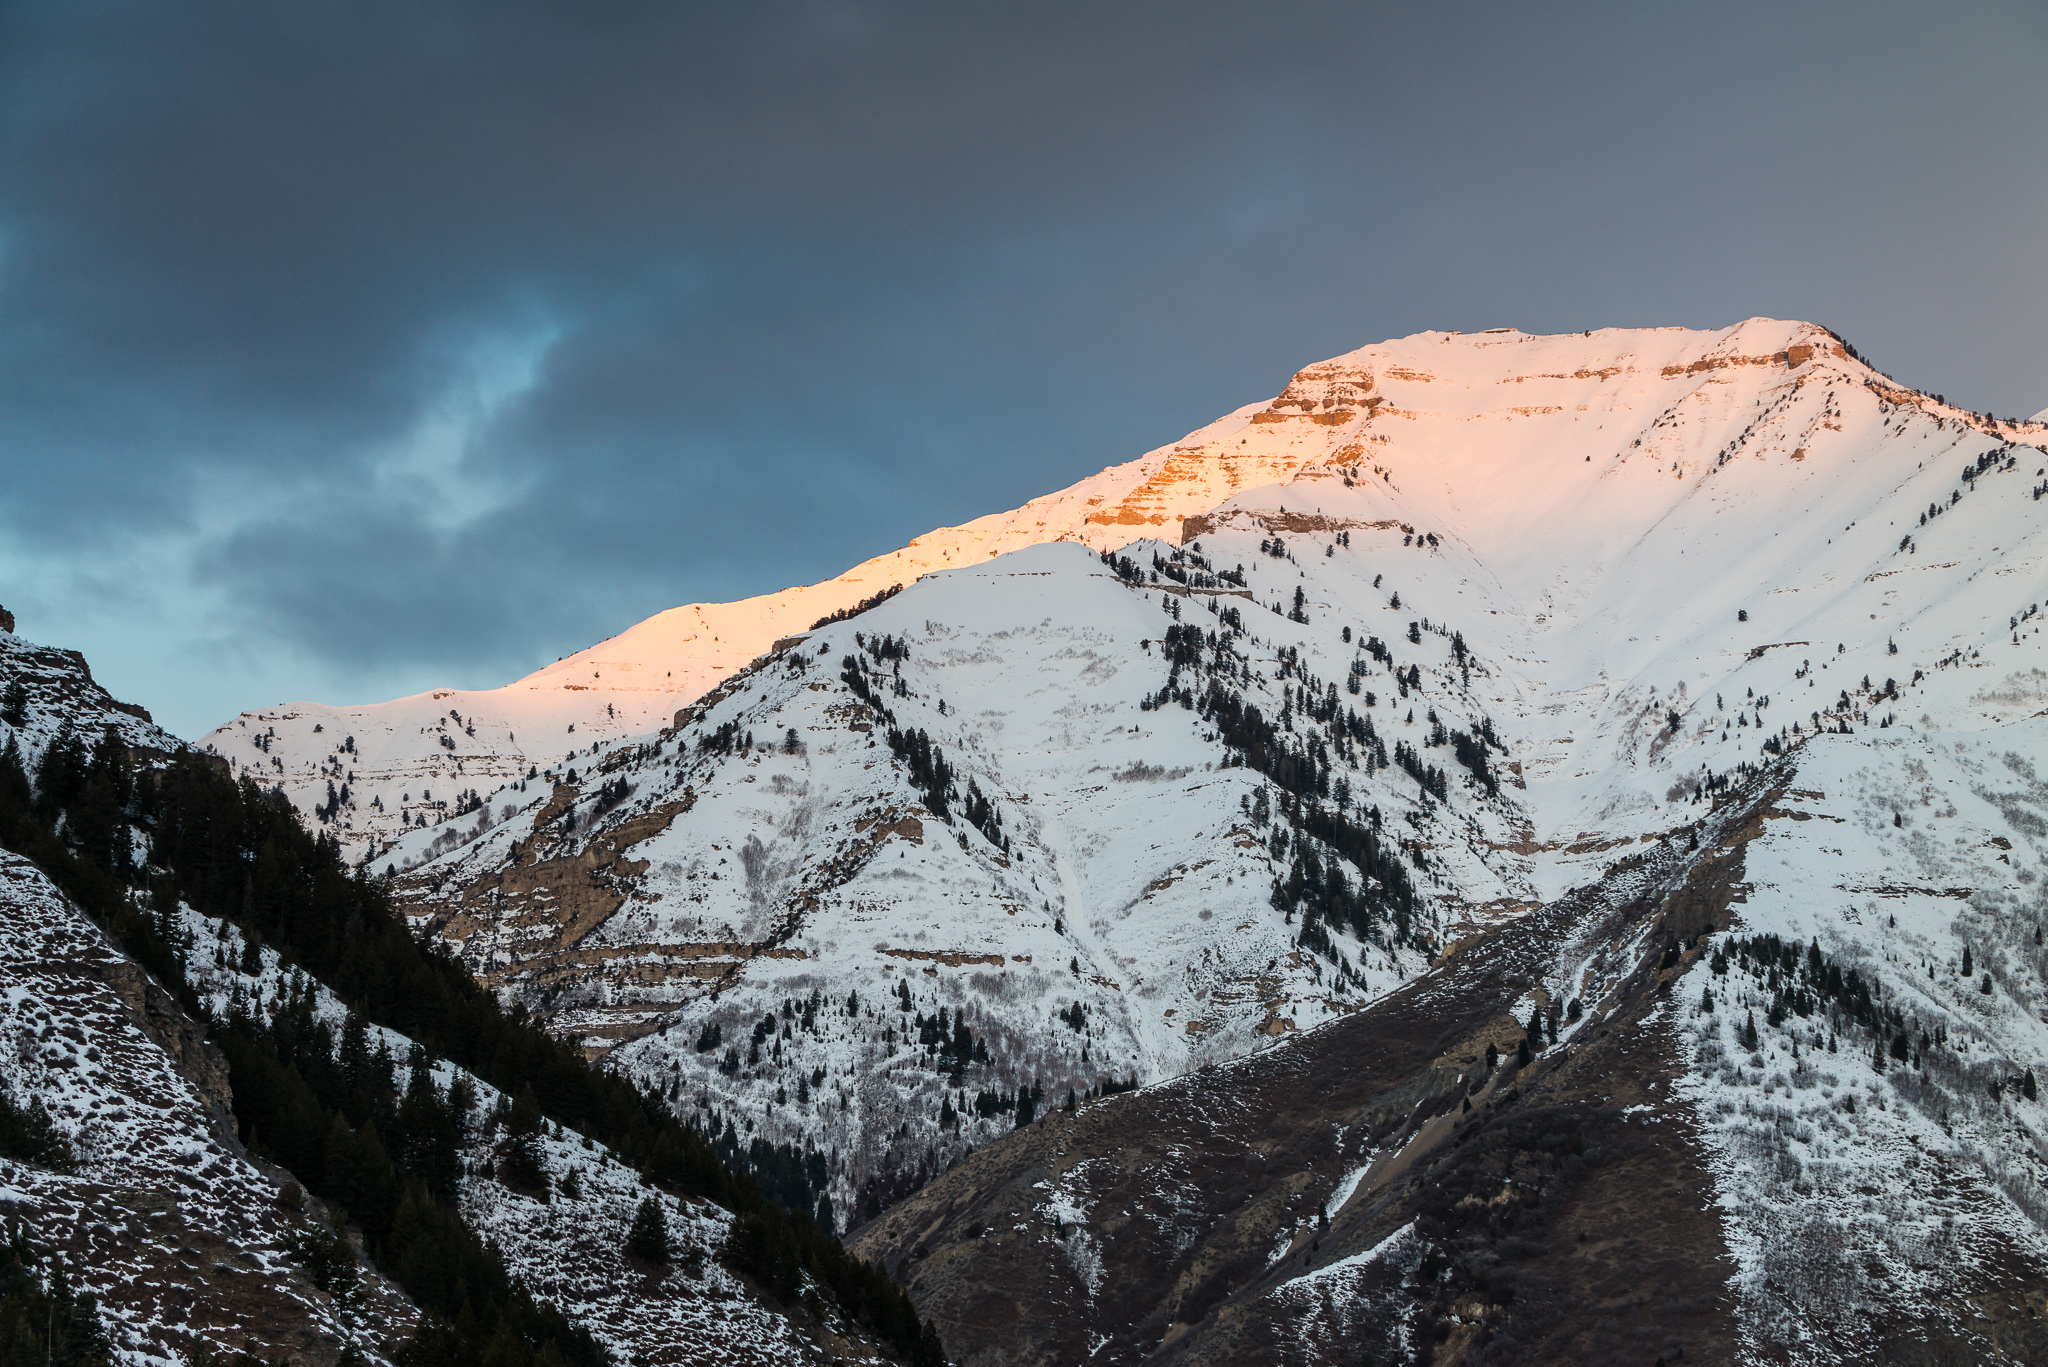 The slopes of Mt. Timpanogos at first light  ISO 200 f/8 1/40s at 82mm